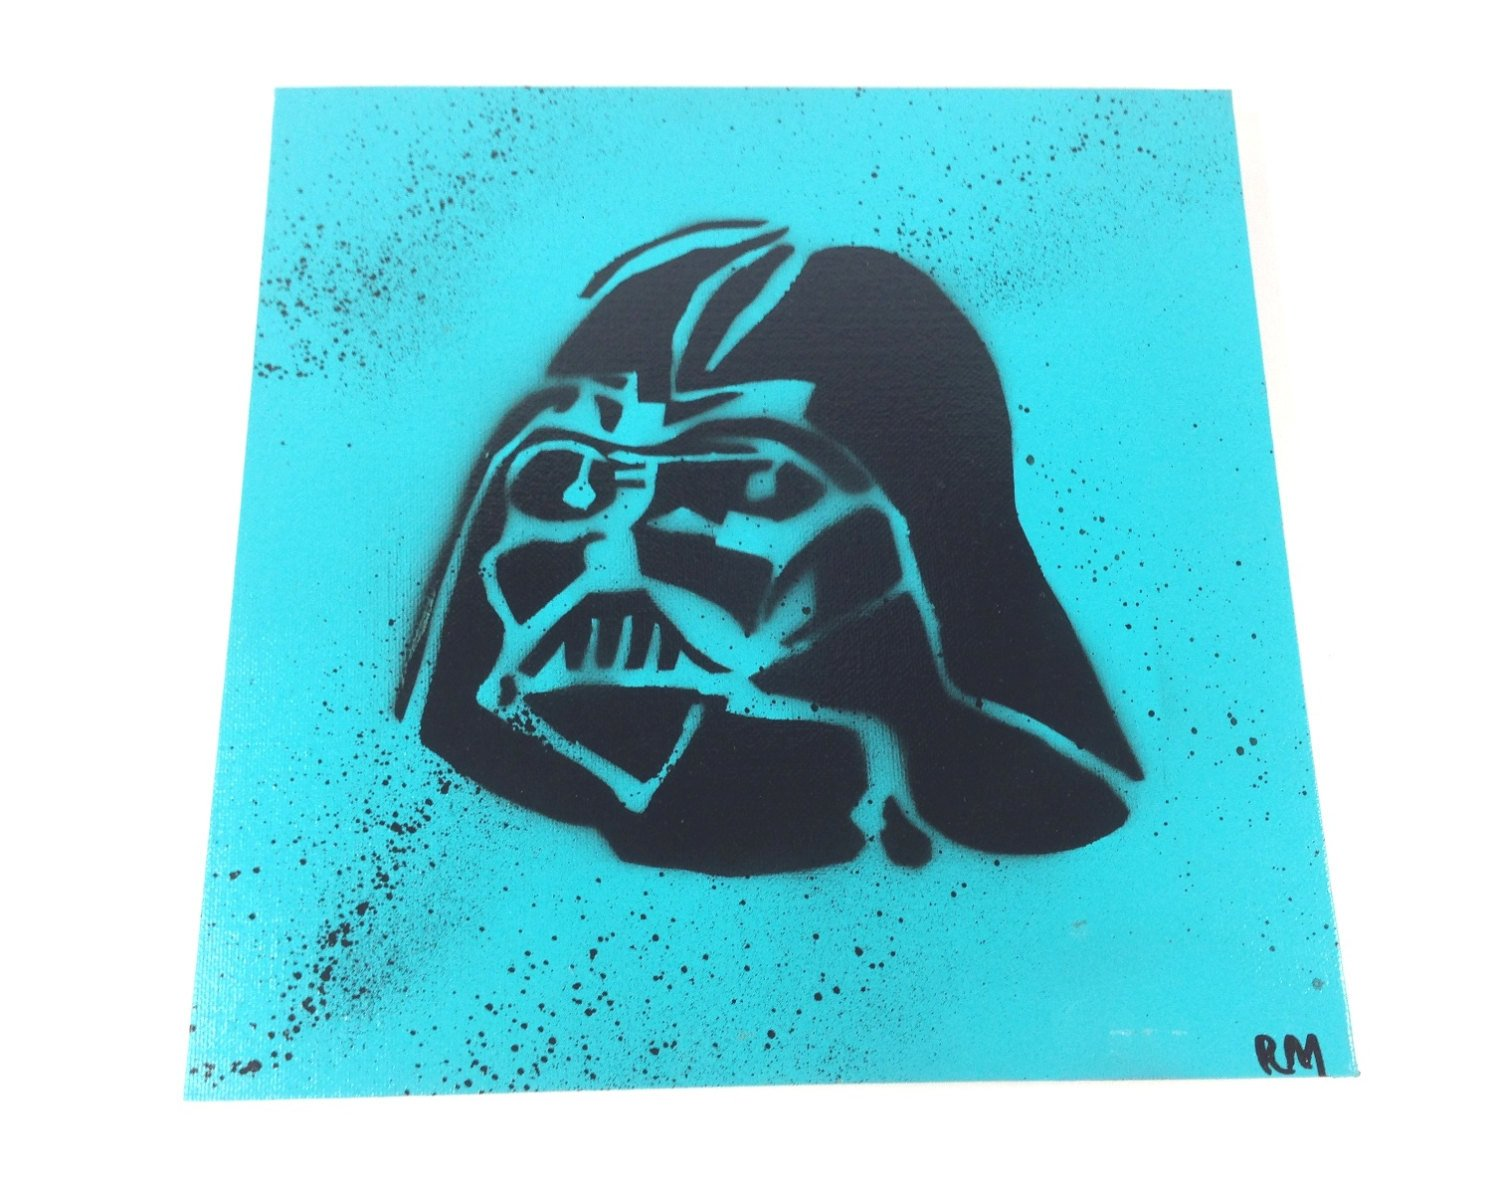 Spray Paint Art Stencils Spray Paint Stencil Art On Canvas Covered Board by